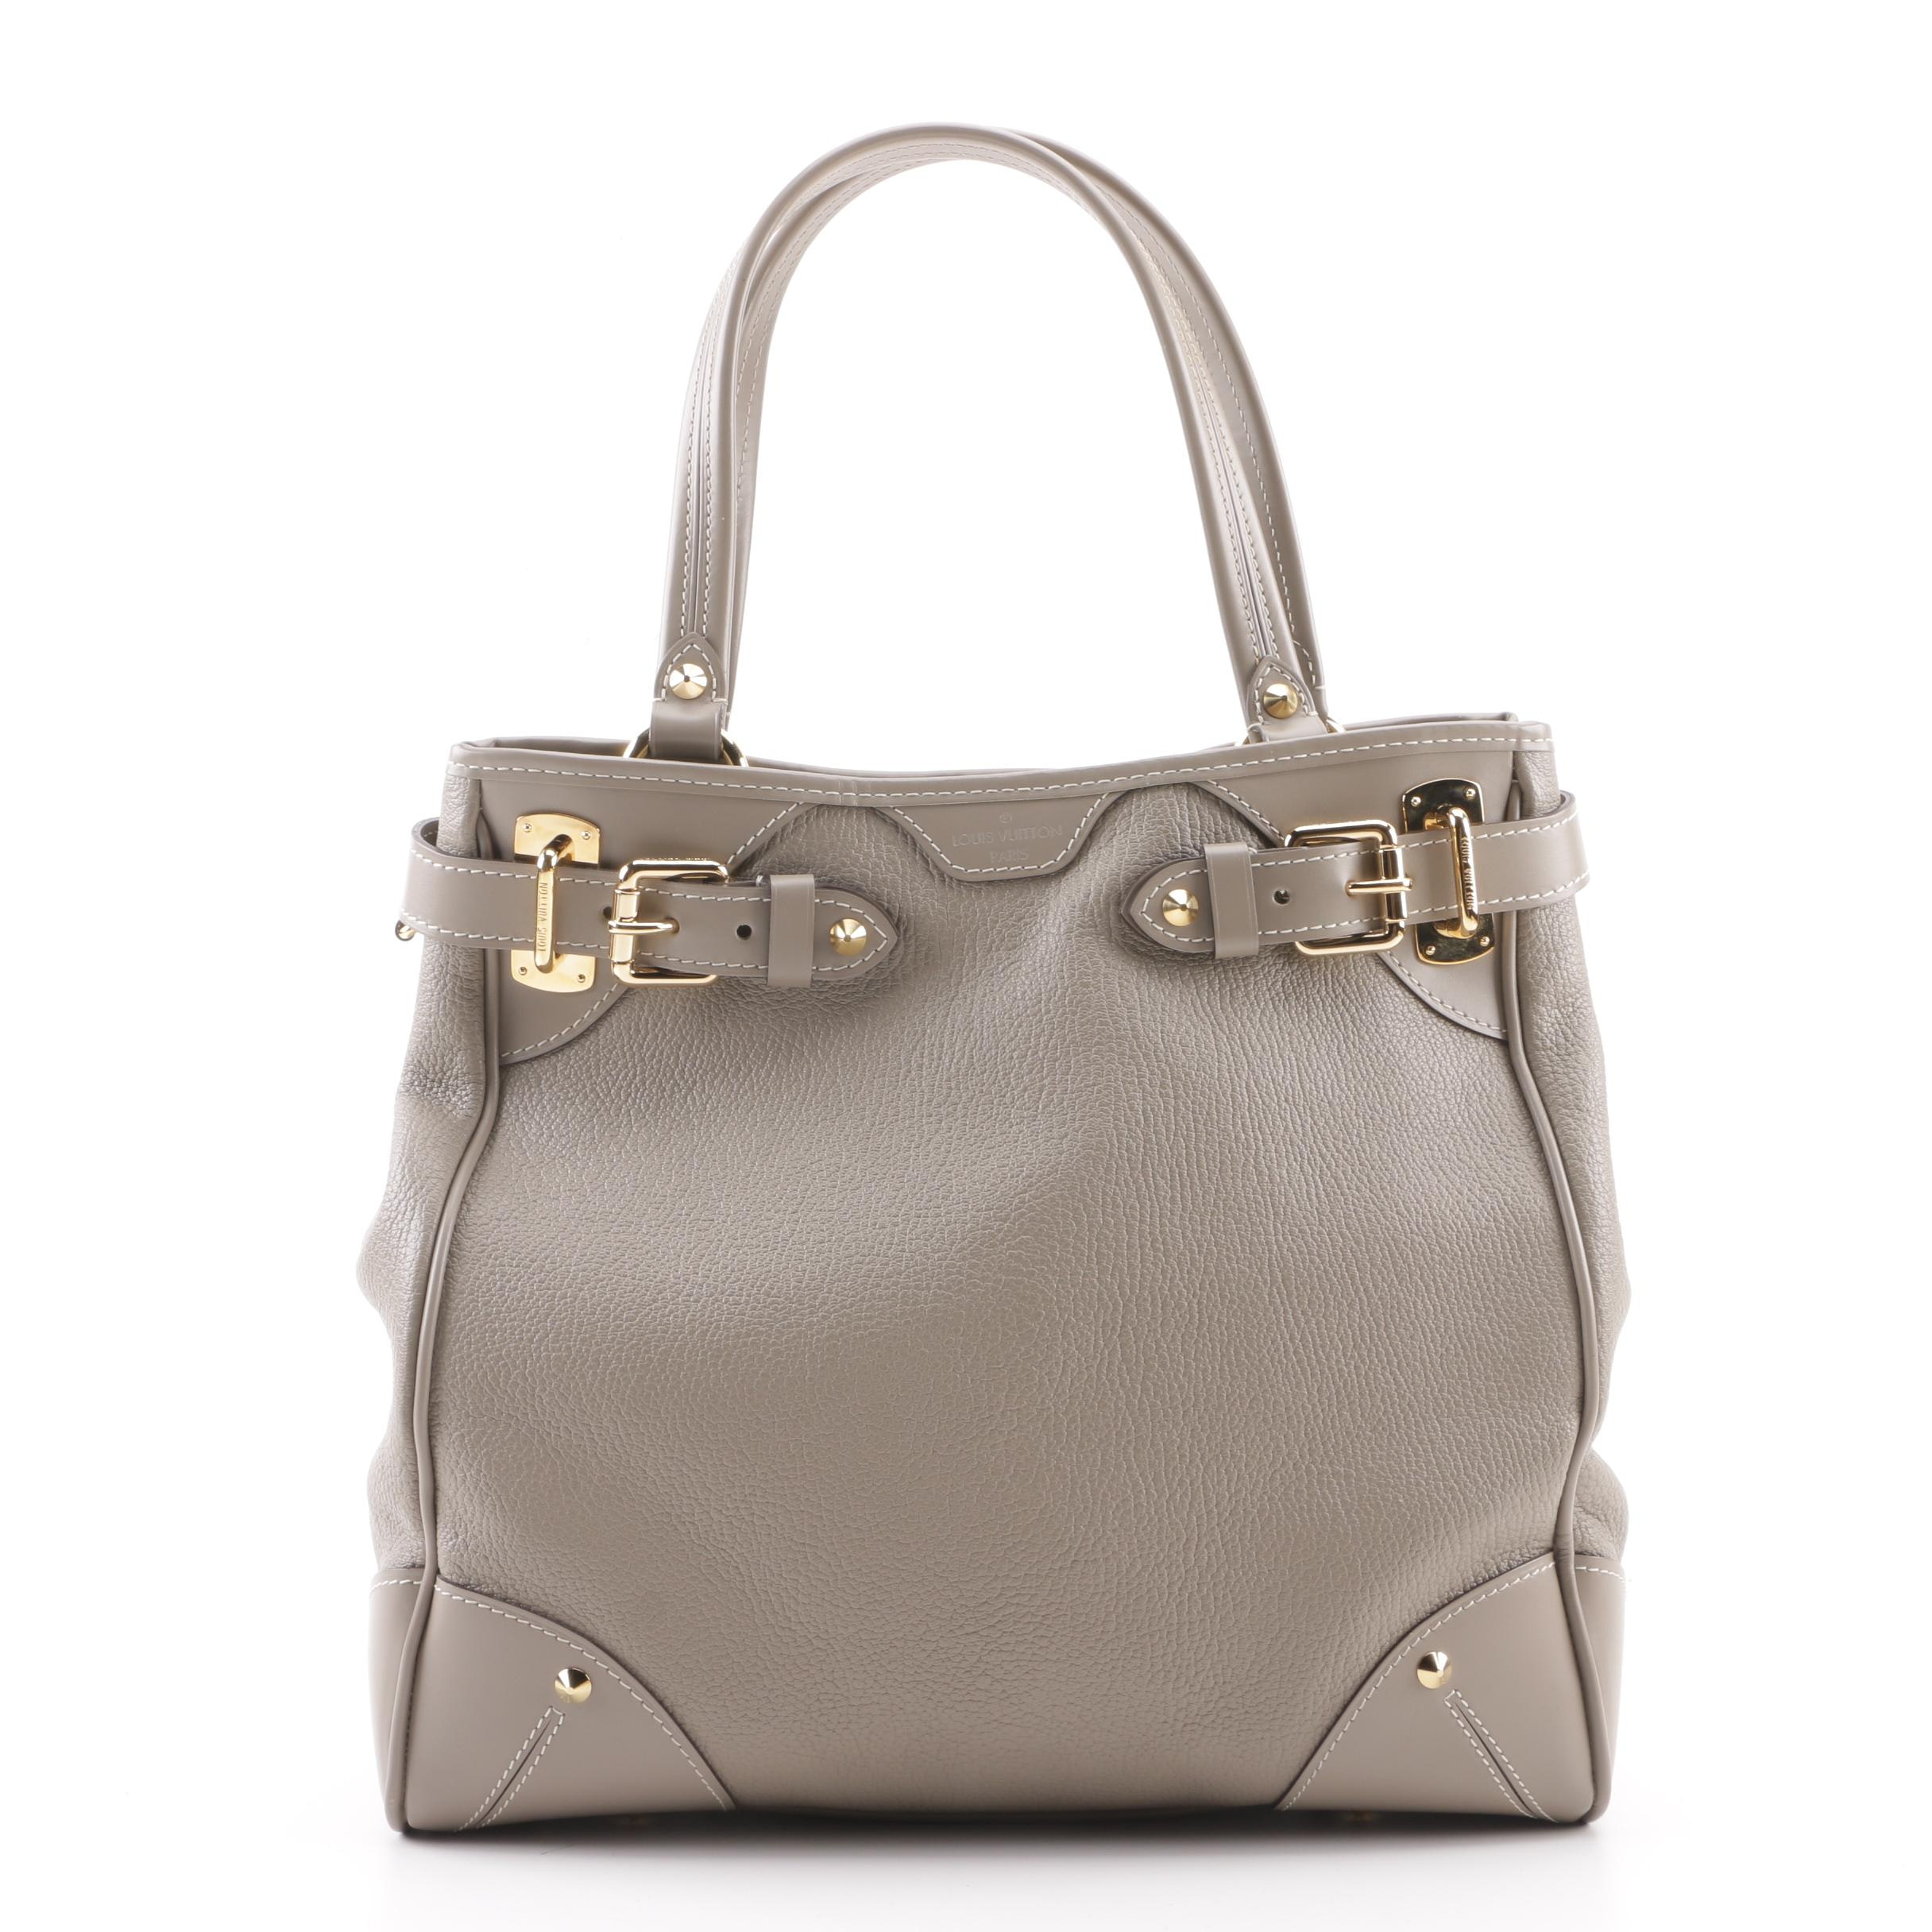 Louis Vuitton Paris Taupe Suhali Leather Majestueux Tote, 2008